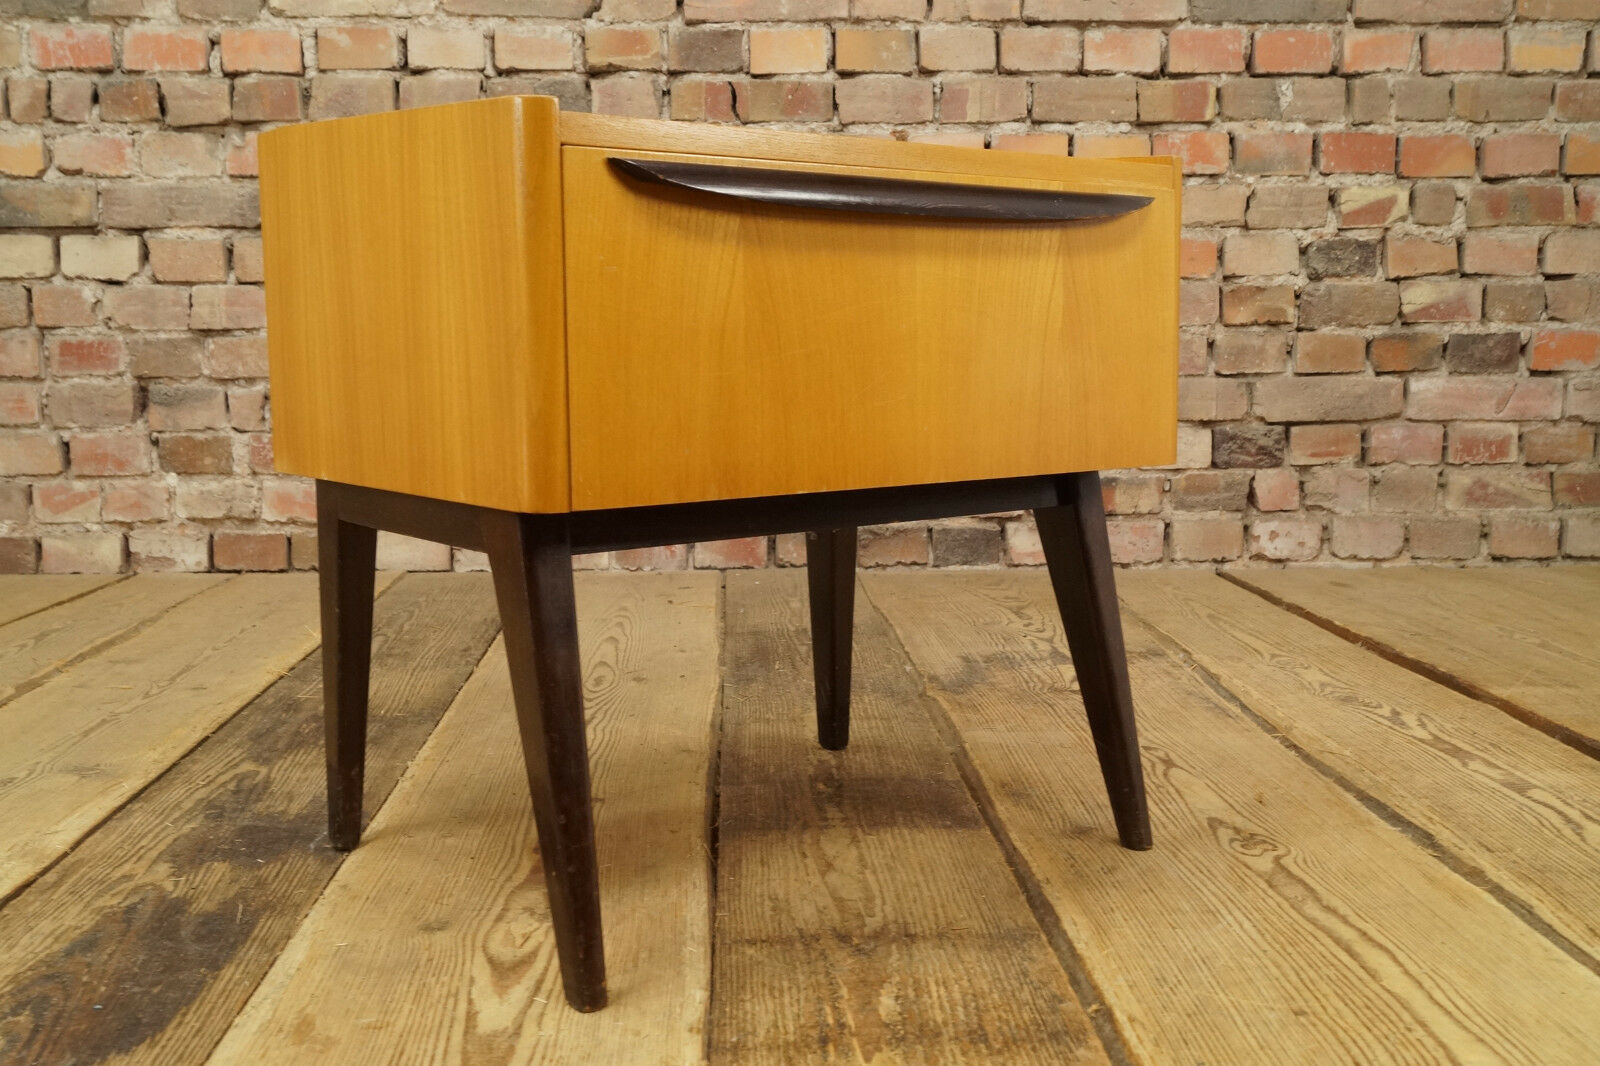 vintage mini sideboard 60er kommode nachttisch mid century design holz anrichte eur 75 00. Black Bedroom Furniture Sets. Home Design Ideas